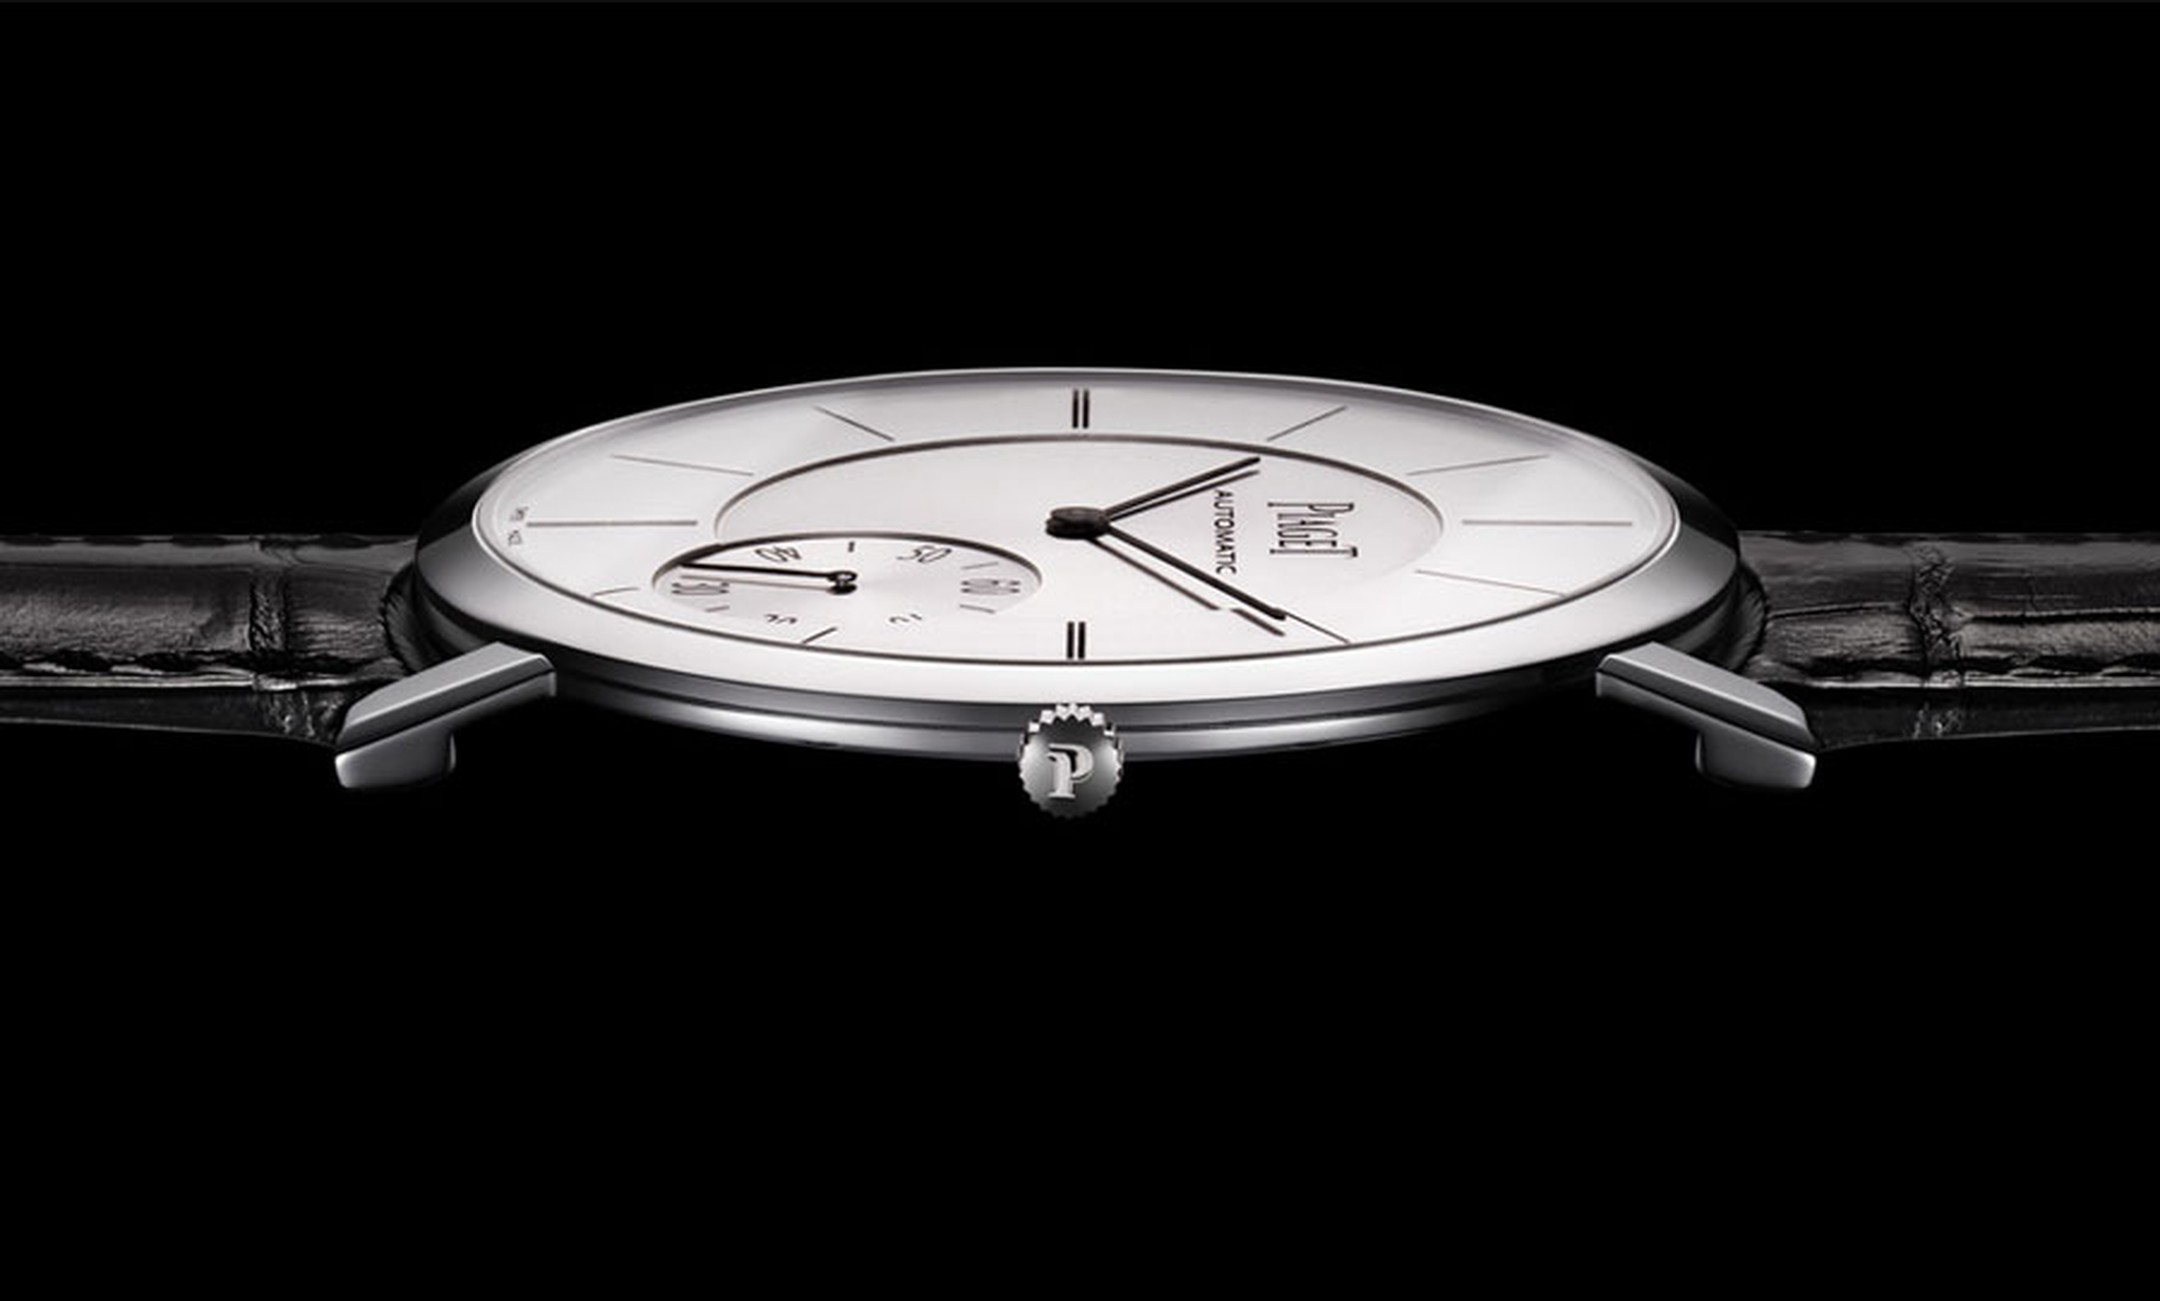 Piaget Altiplano. Wafer-thin, the Piaget Altiplano is but 5.25mm high